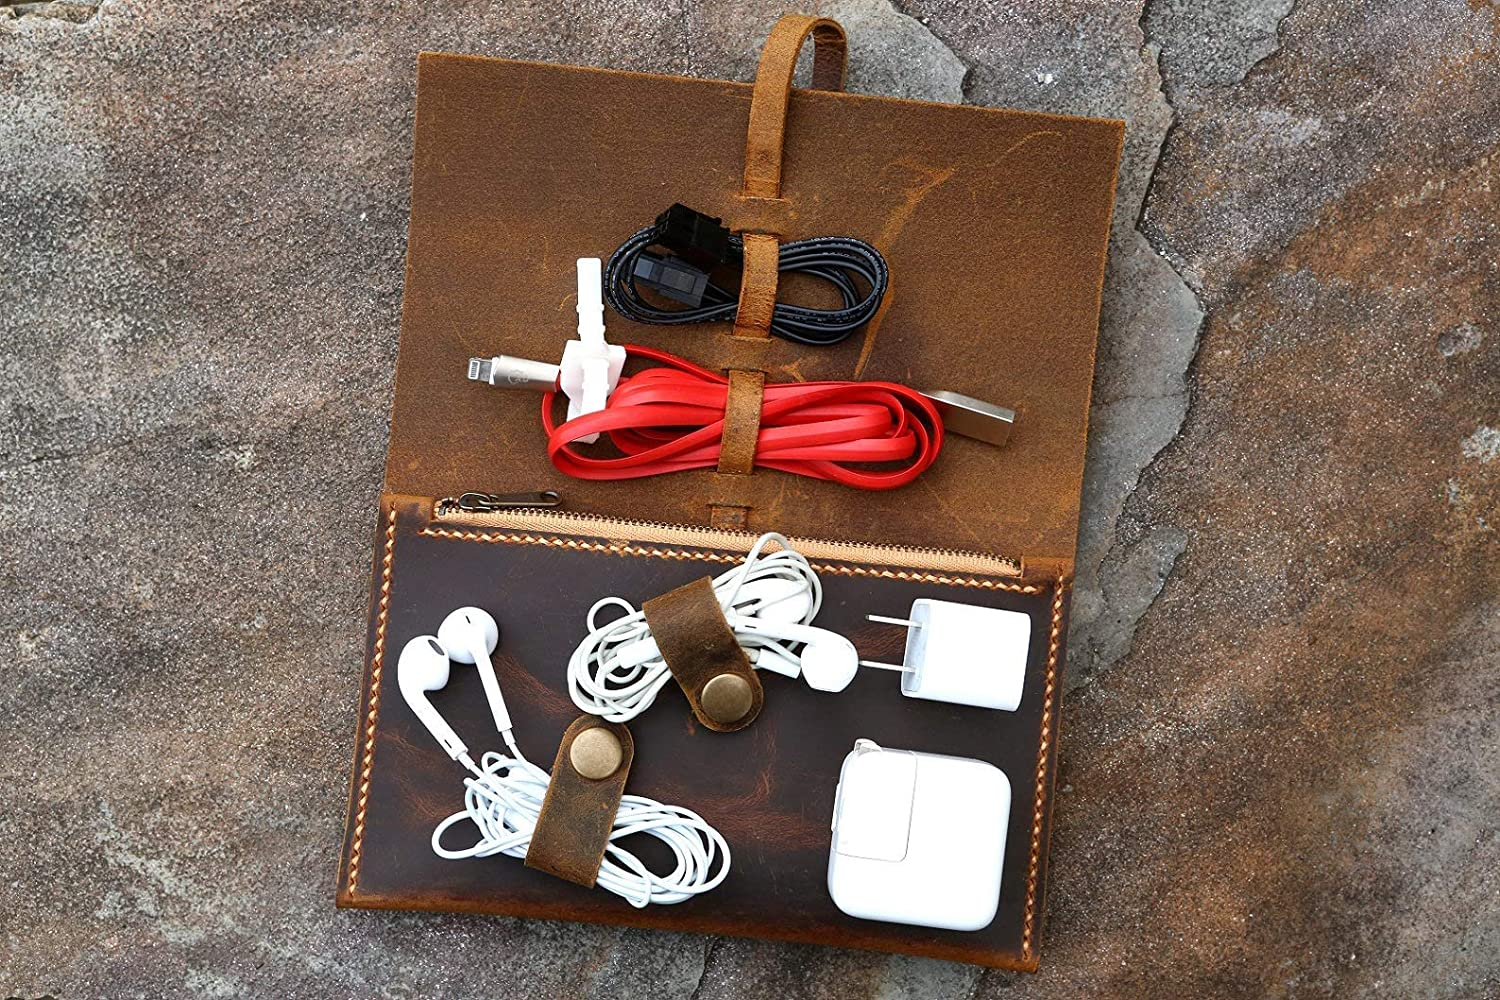 Handmade Leather Cord Organizer Leather cable managementCable organiserCord case pouchLeather Cord WrapGift for MenWomenCord Roll